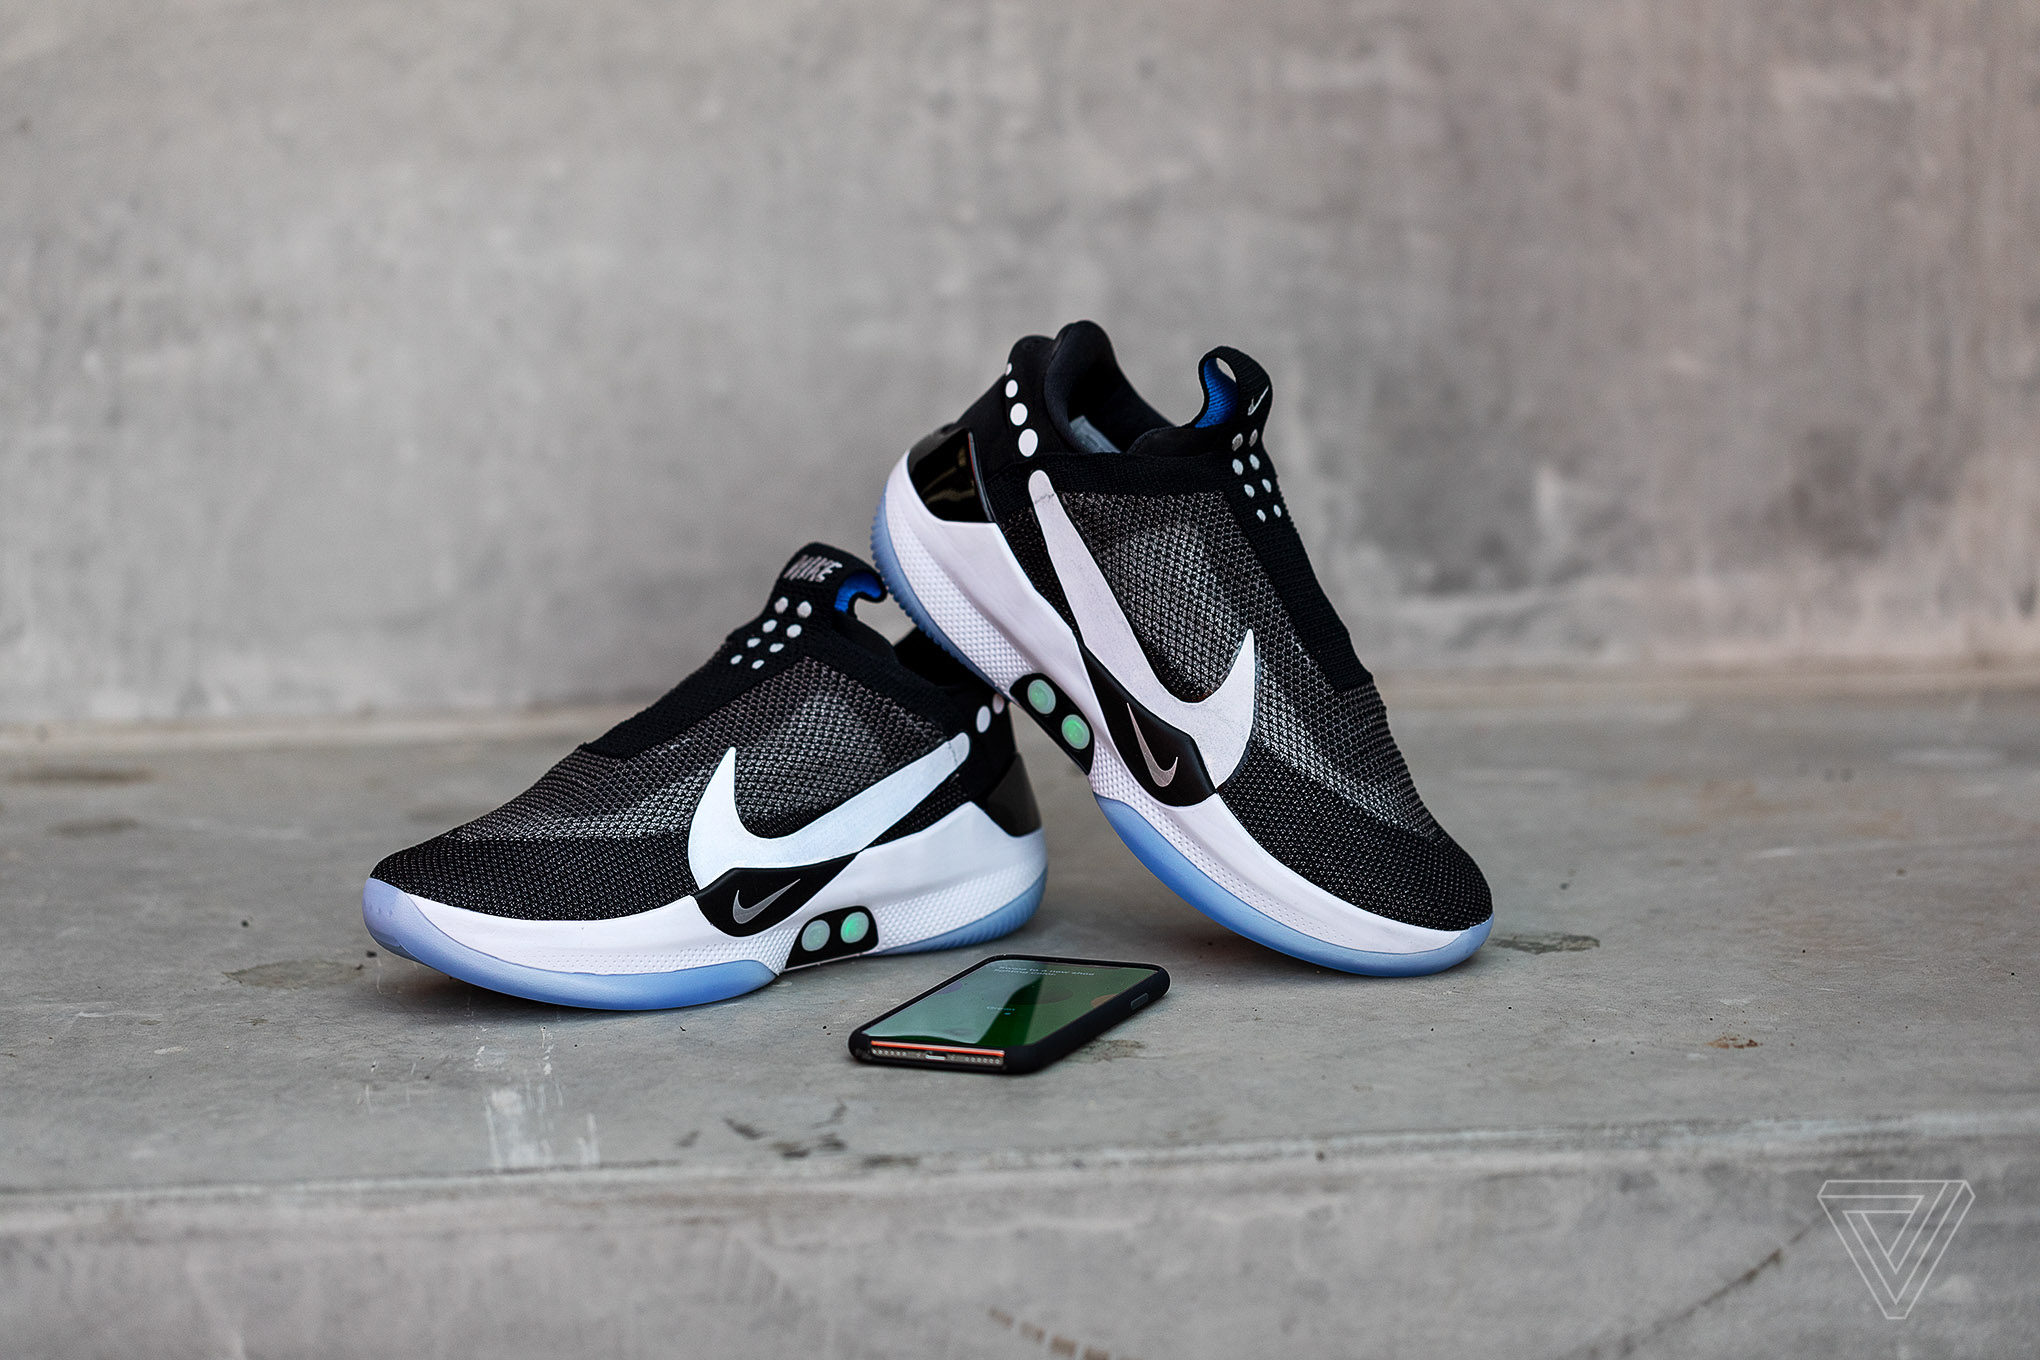 Nike s Adapt BB self-lacing sneakers let you tie your shoes from an ... 869ff4604a